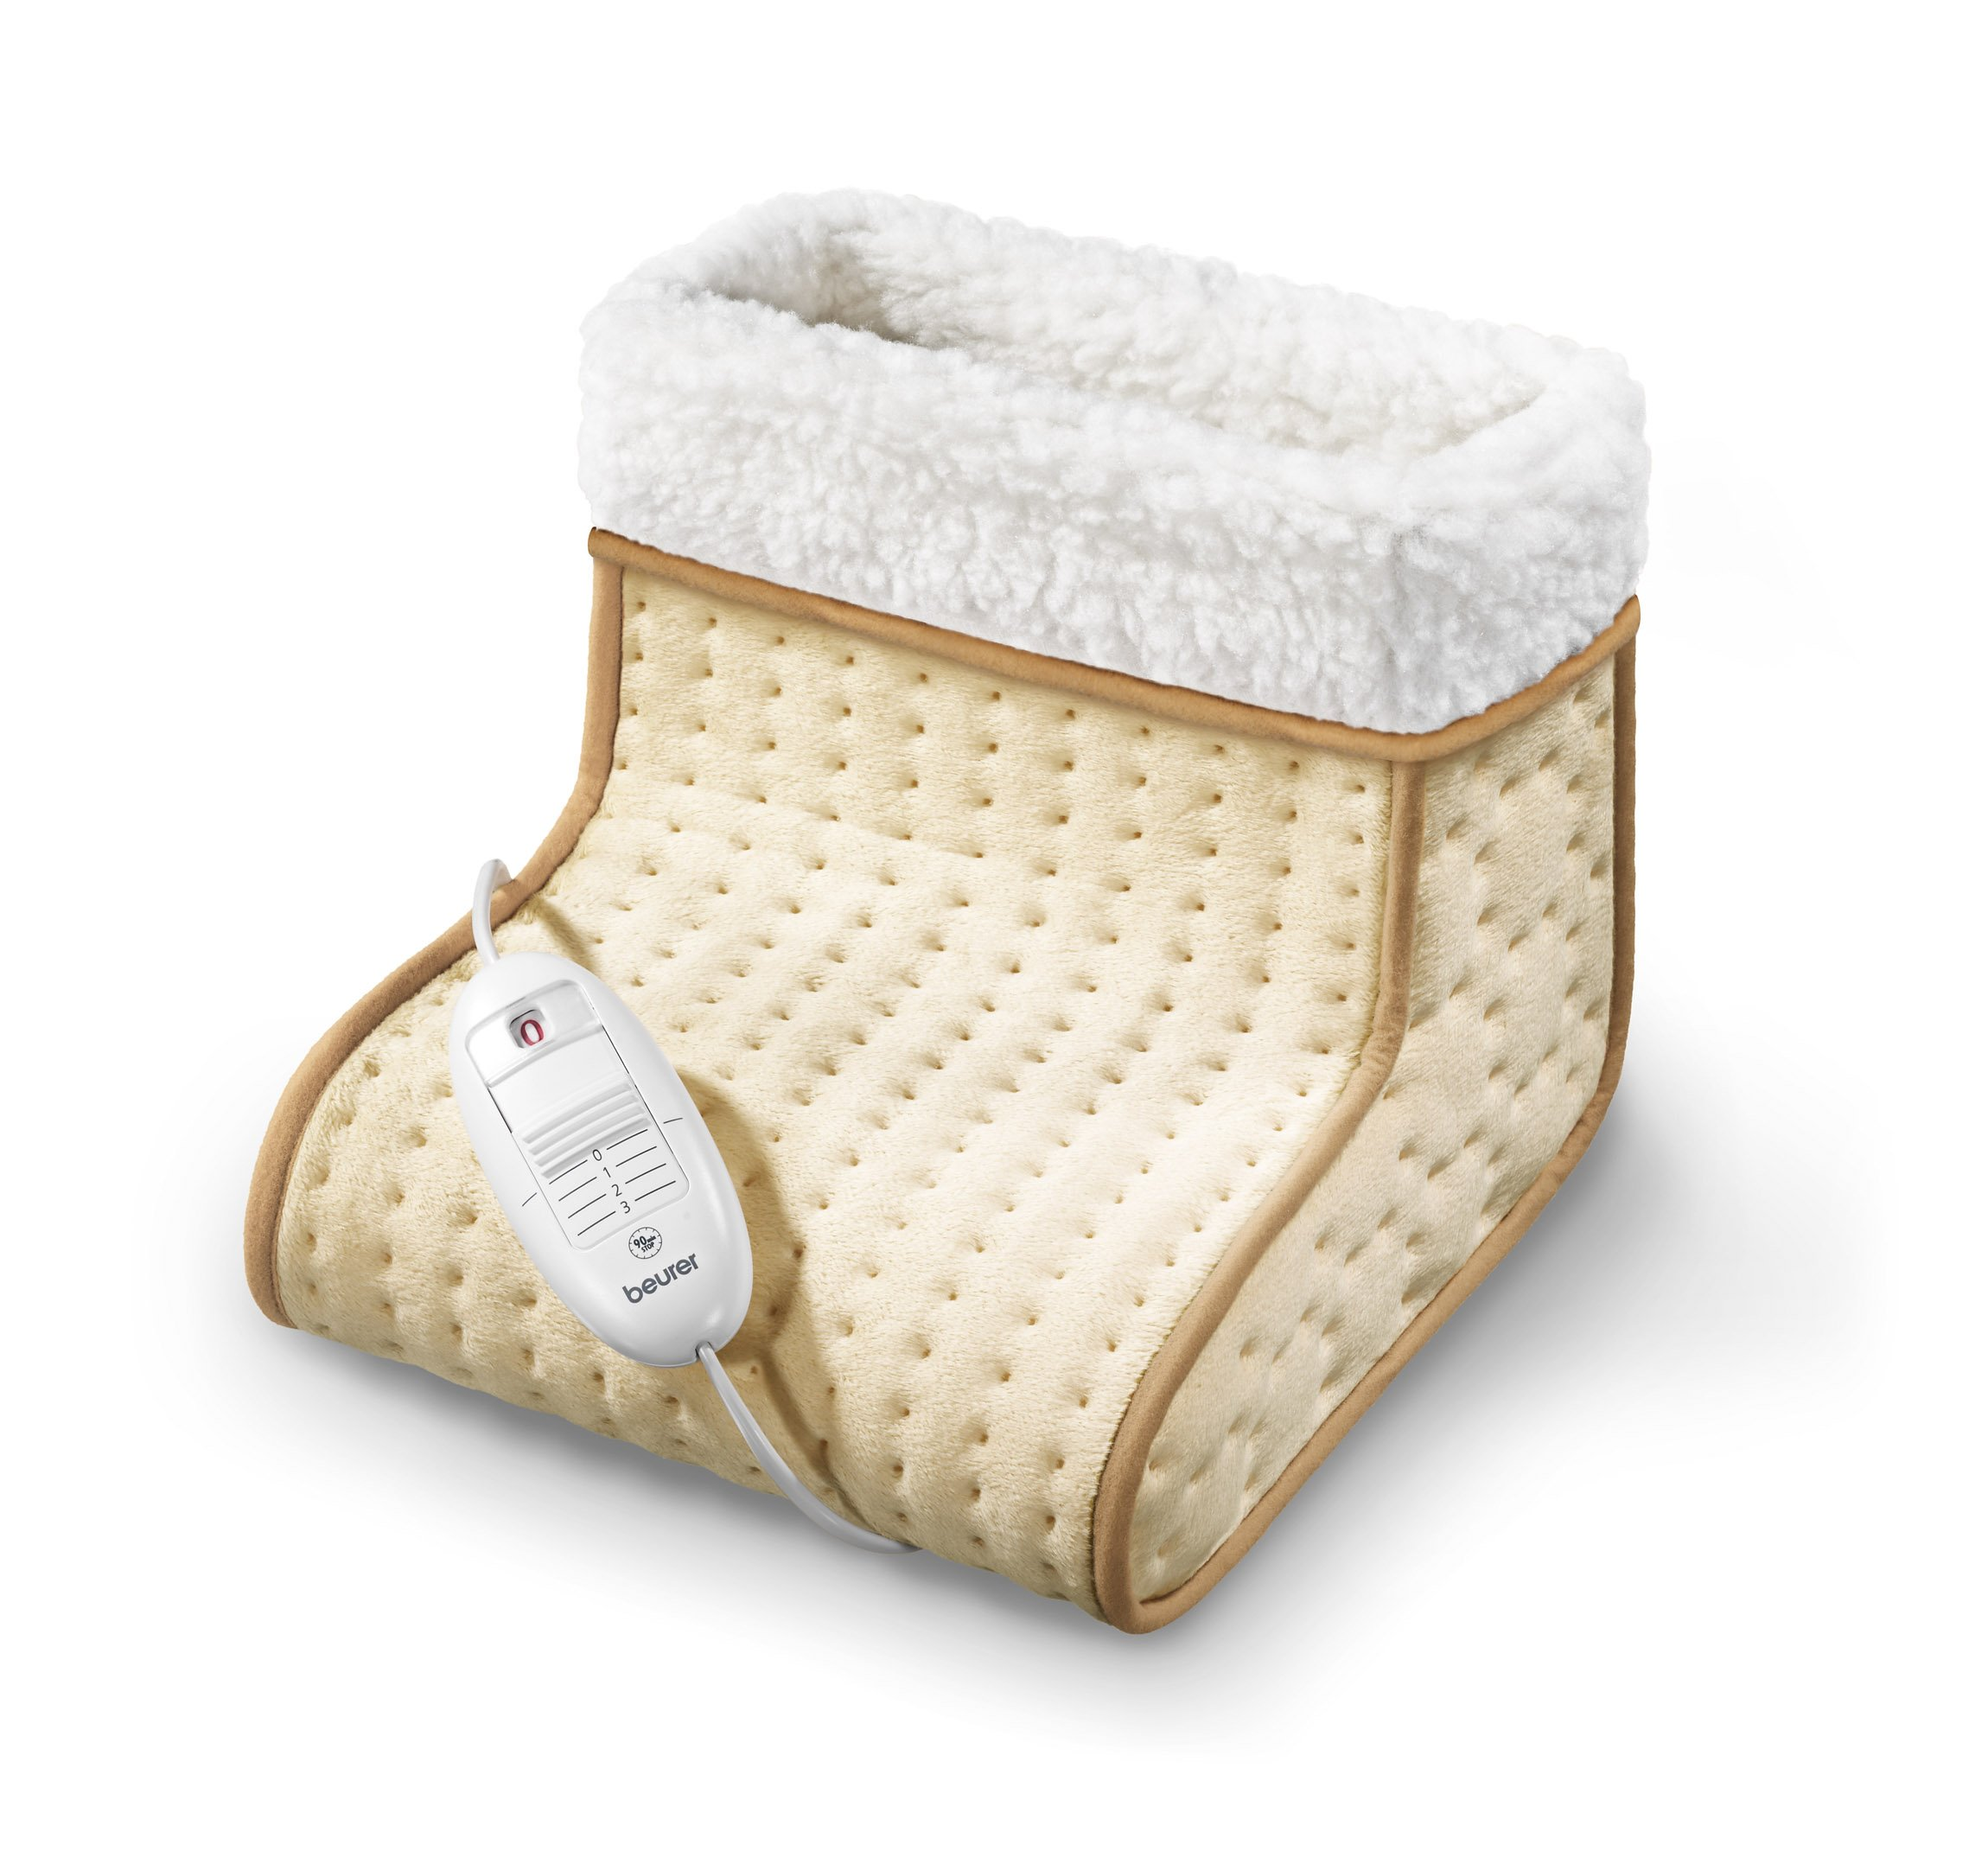 Beurer - FW 20 Foot Warmer - 3 Years Warranty